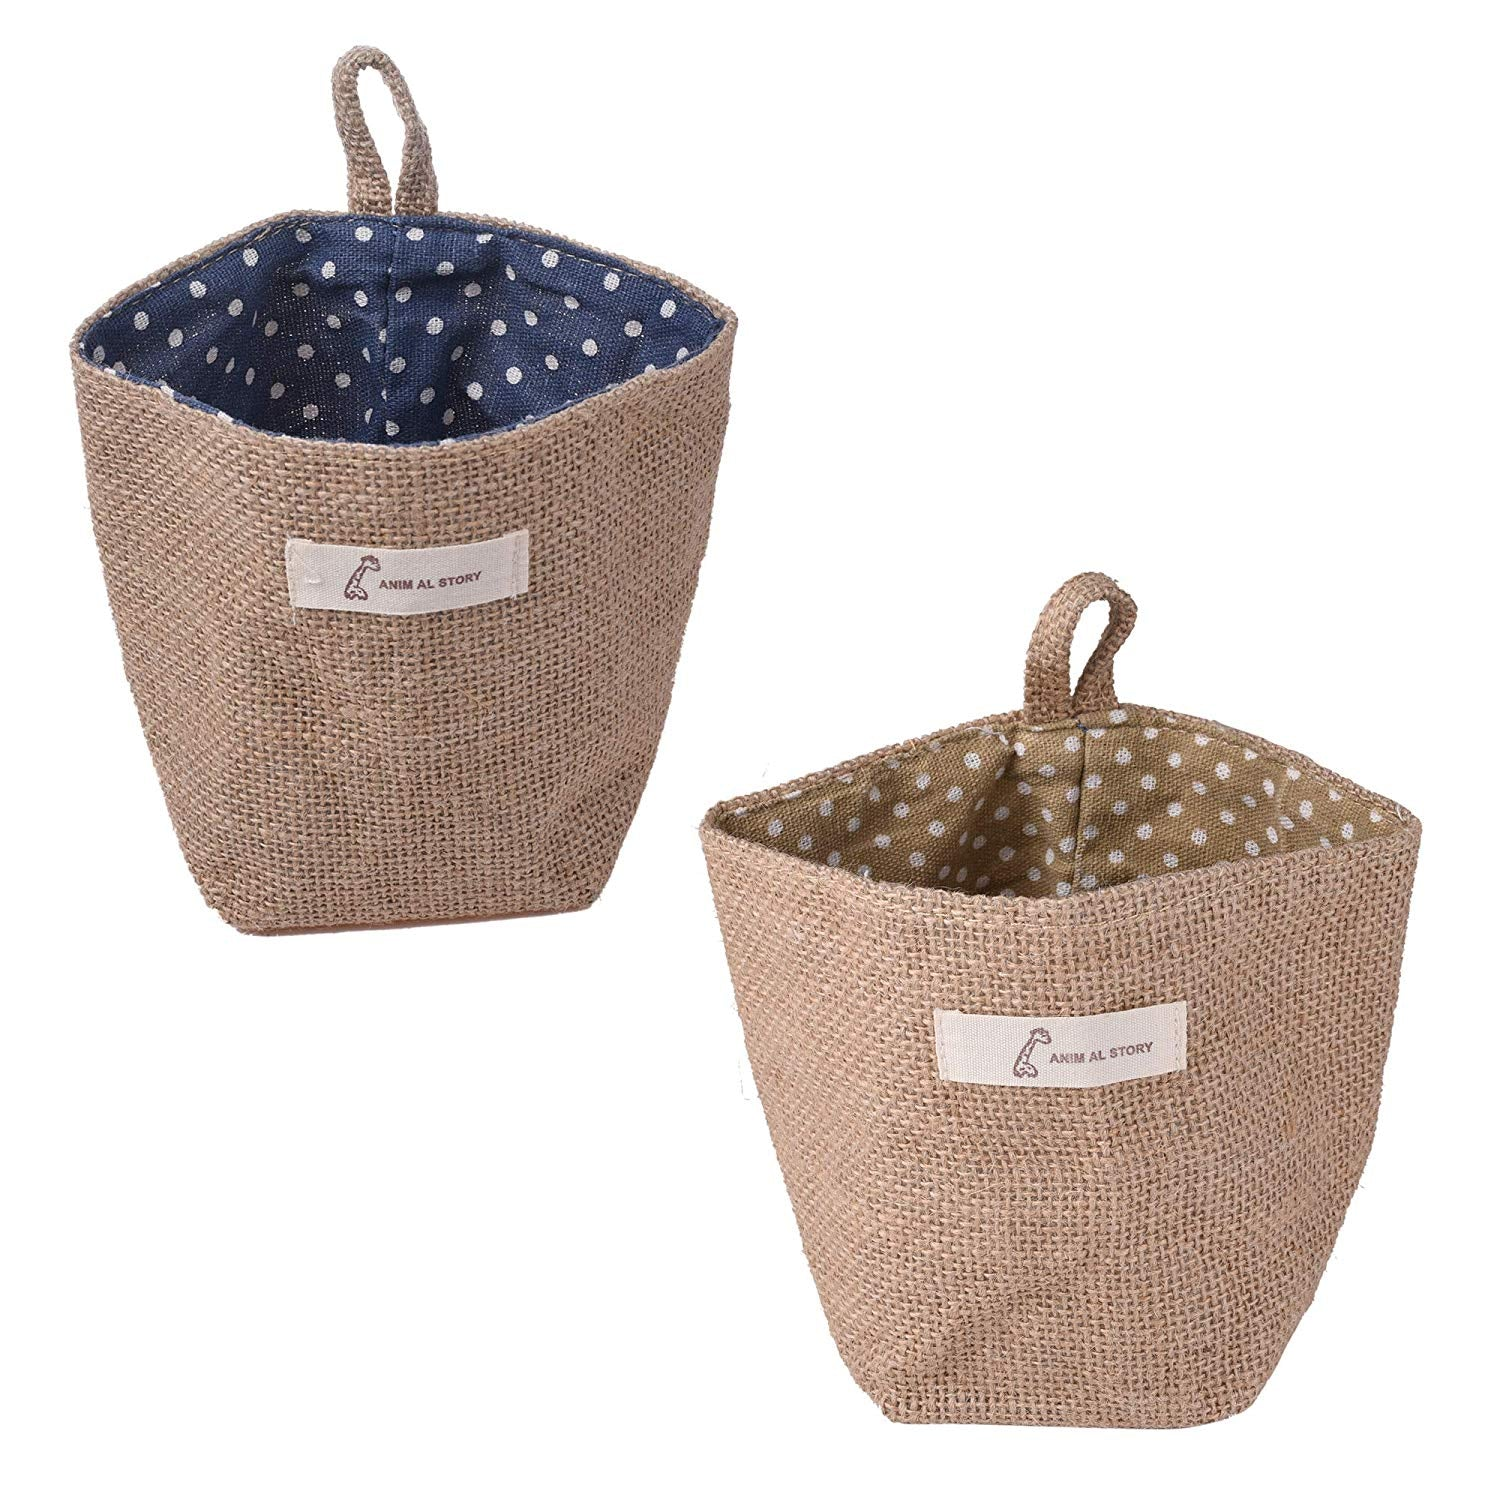 CM Cosmos 2 Pcs Mini Hanging Storage Bag Cotton Linen Small Storage Basket Decor Bin Bag for Wall Door Closet (Blue & Yellow Dot Pattern)